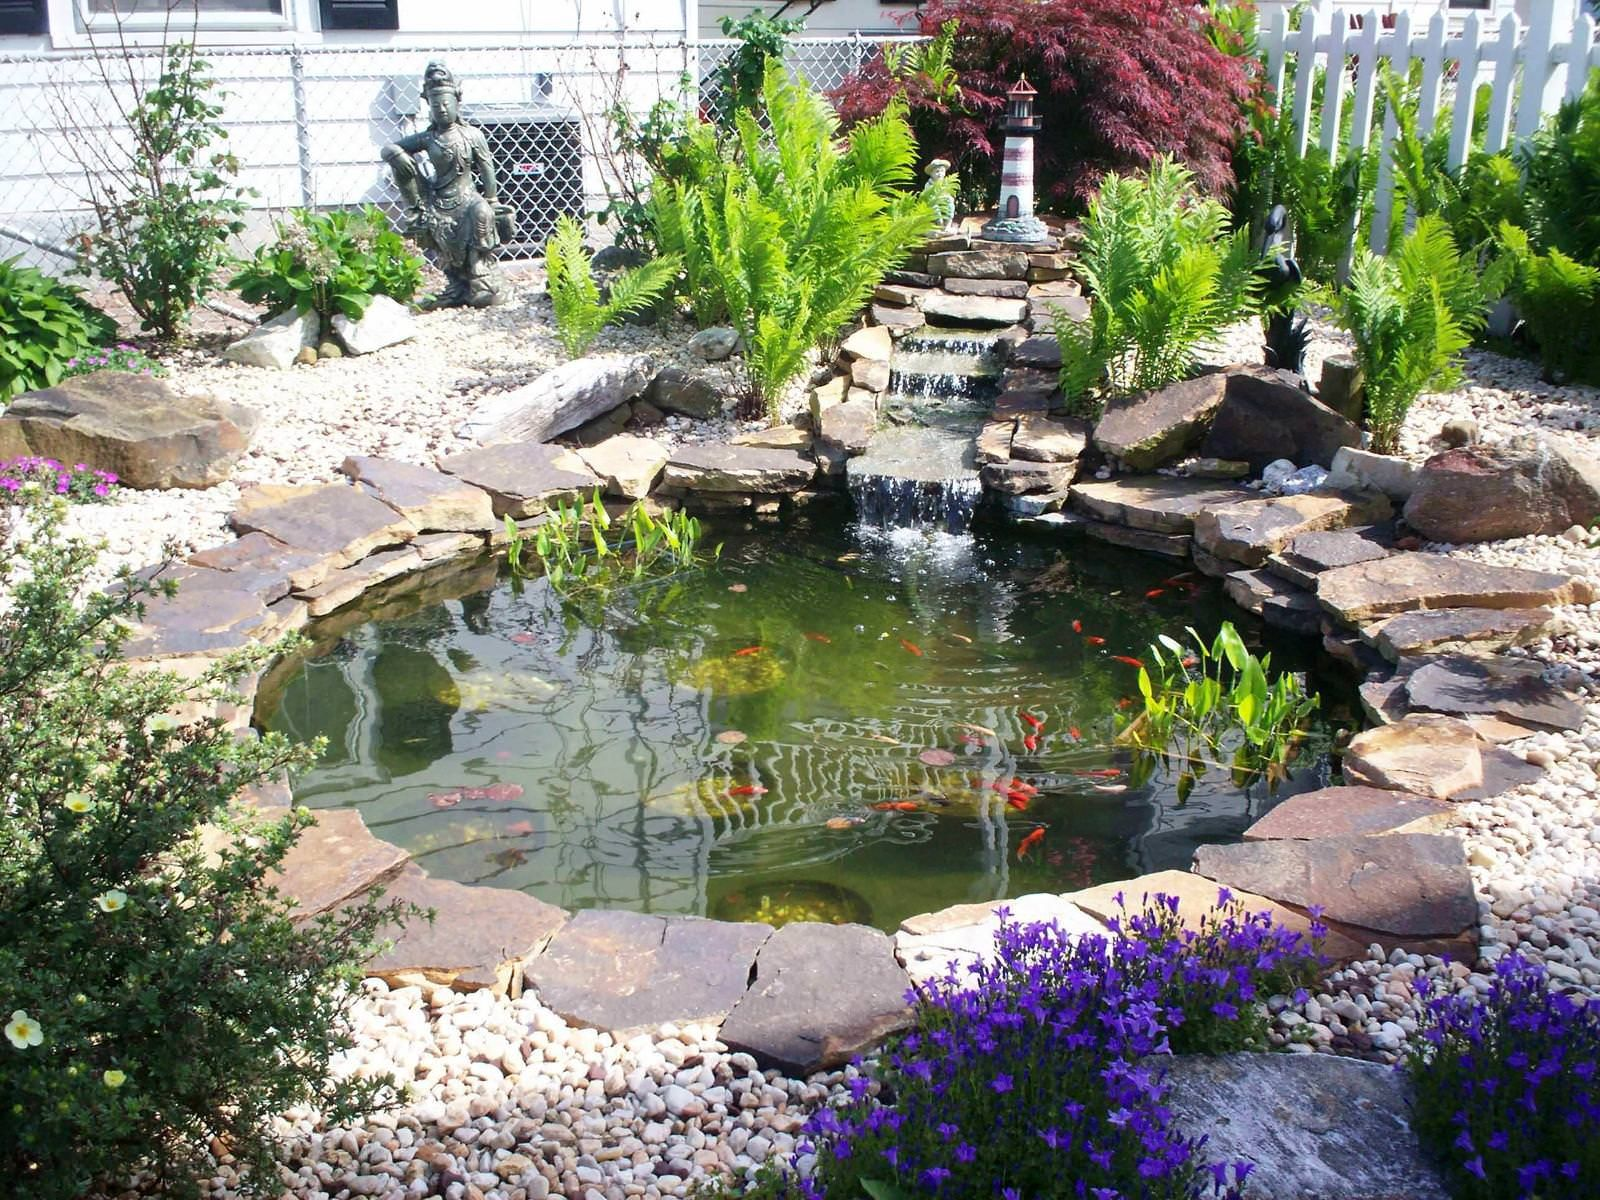 Small garden or backyard aquarium ideas practic ideas for Fish for small outdoor pond